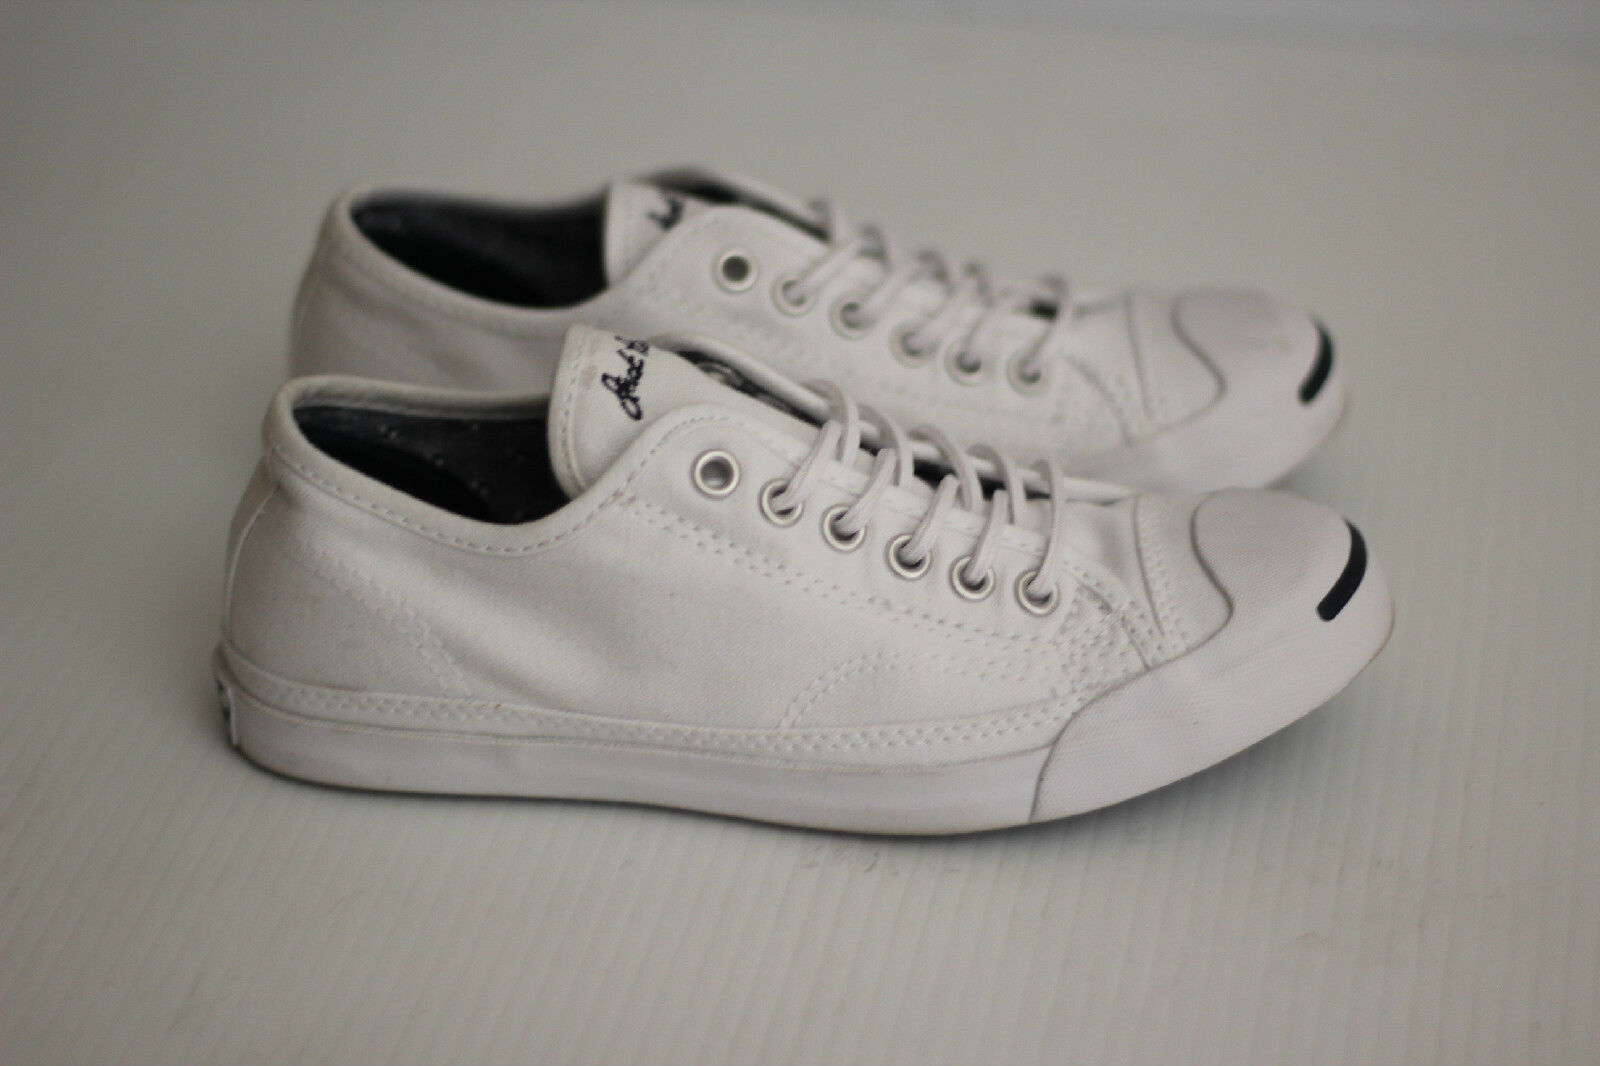 NEW Damenschuhe Converse Jack Purcell Sneakers Lace Up - Niedrig Top - Weiß - Up Größe 5.5US af267d